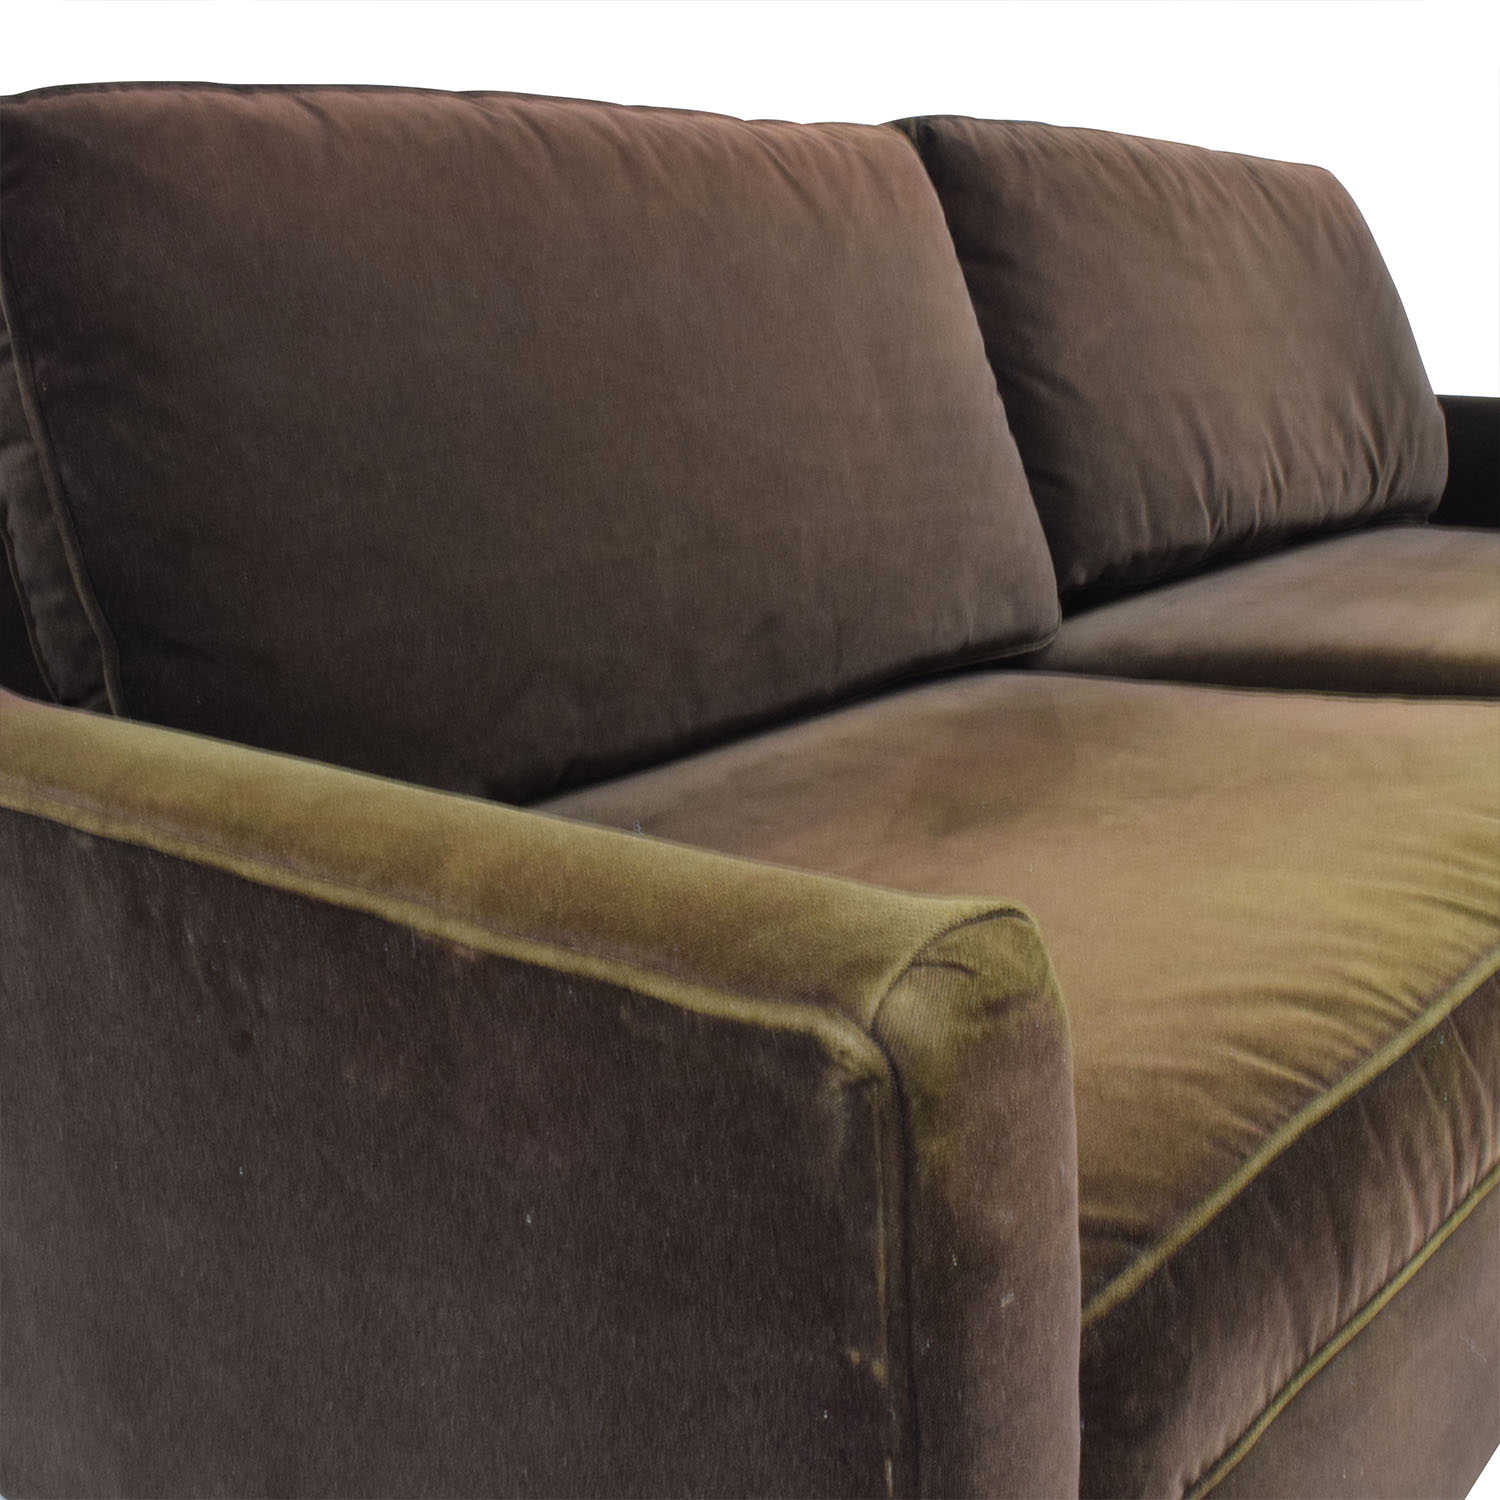 Buying A Second Hand Sofa 79 Off Dark Brown Velvet Two Cushion Sofa Sofas